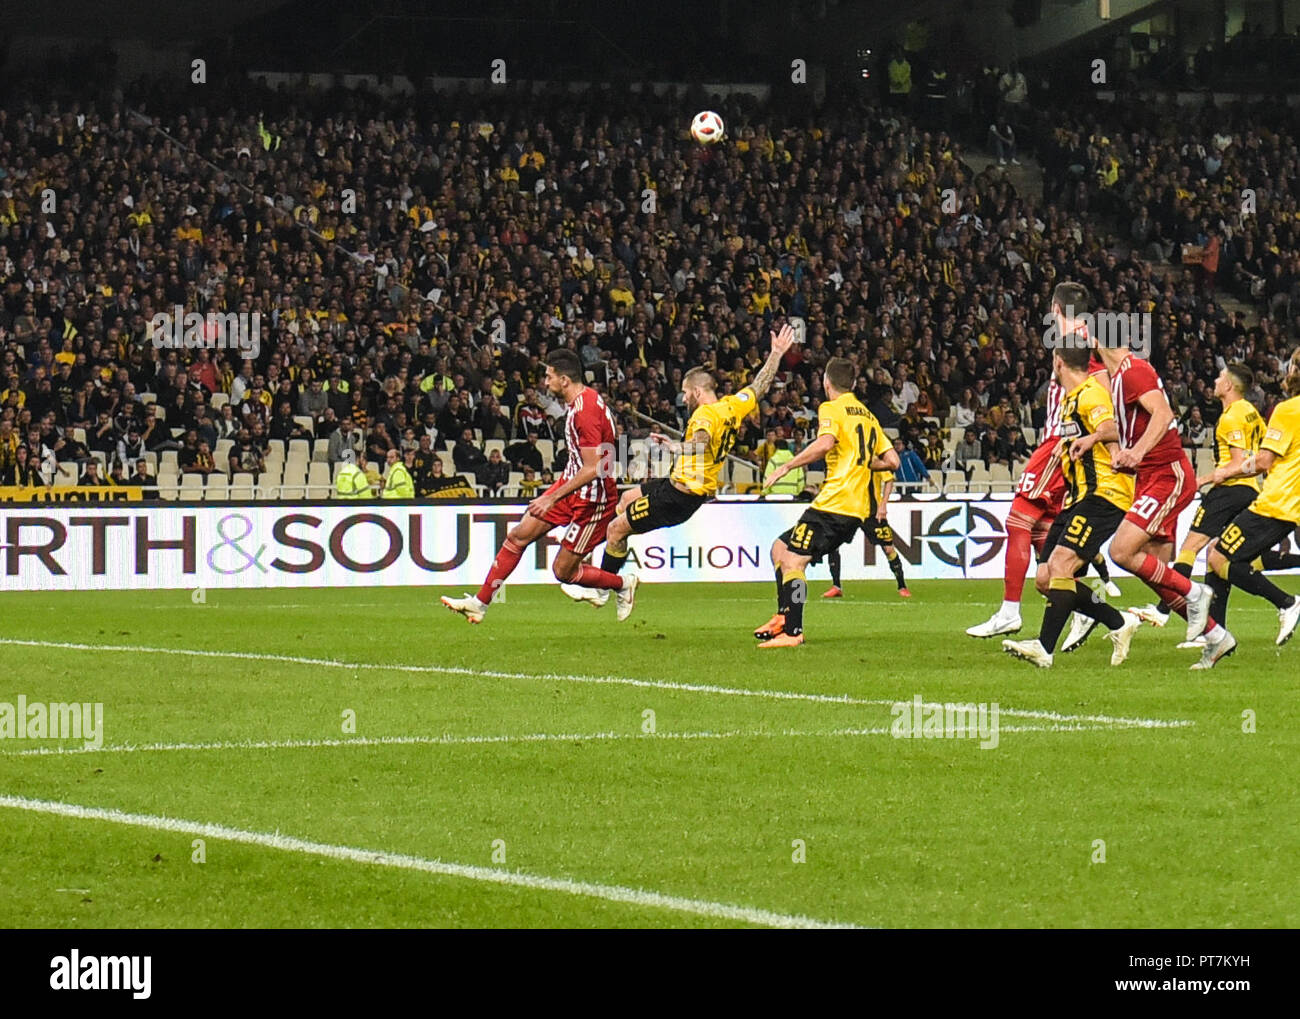 Athens, Greece, Greece. 7th Oct, 2018. Olympiakos' Ahmed Hassan seen in action during their Greek Super League soccer match at Olympic stadium. Credit: Dimitris Lampropoulos/SOPA Images/ZUMA Wire/Alamy Live News - Stock Image